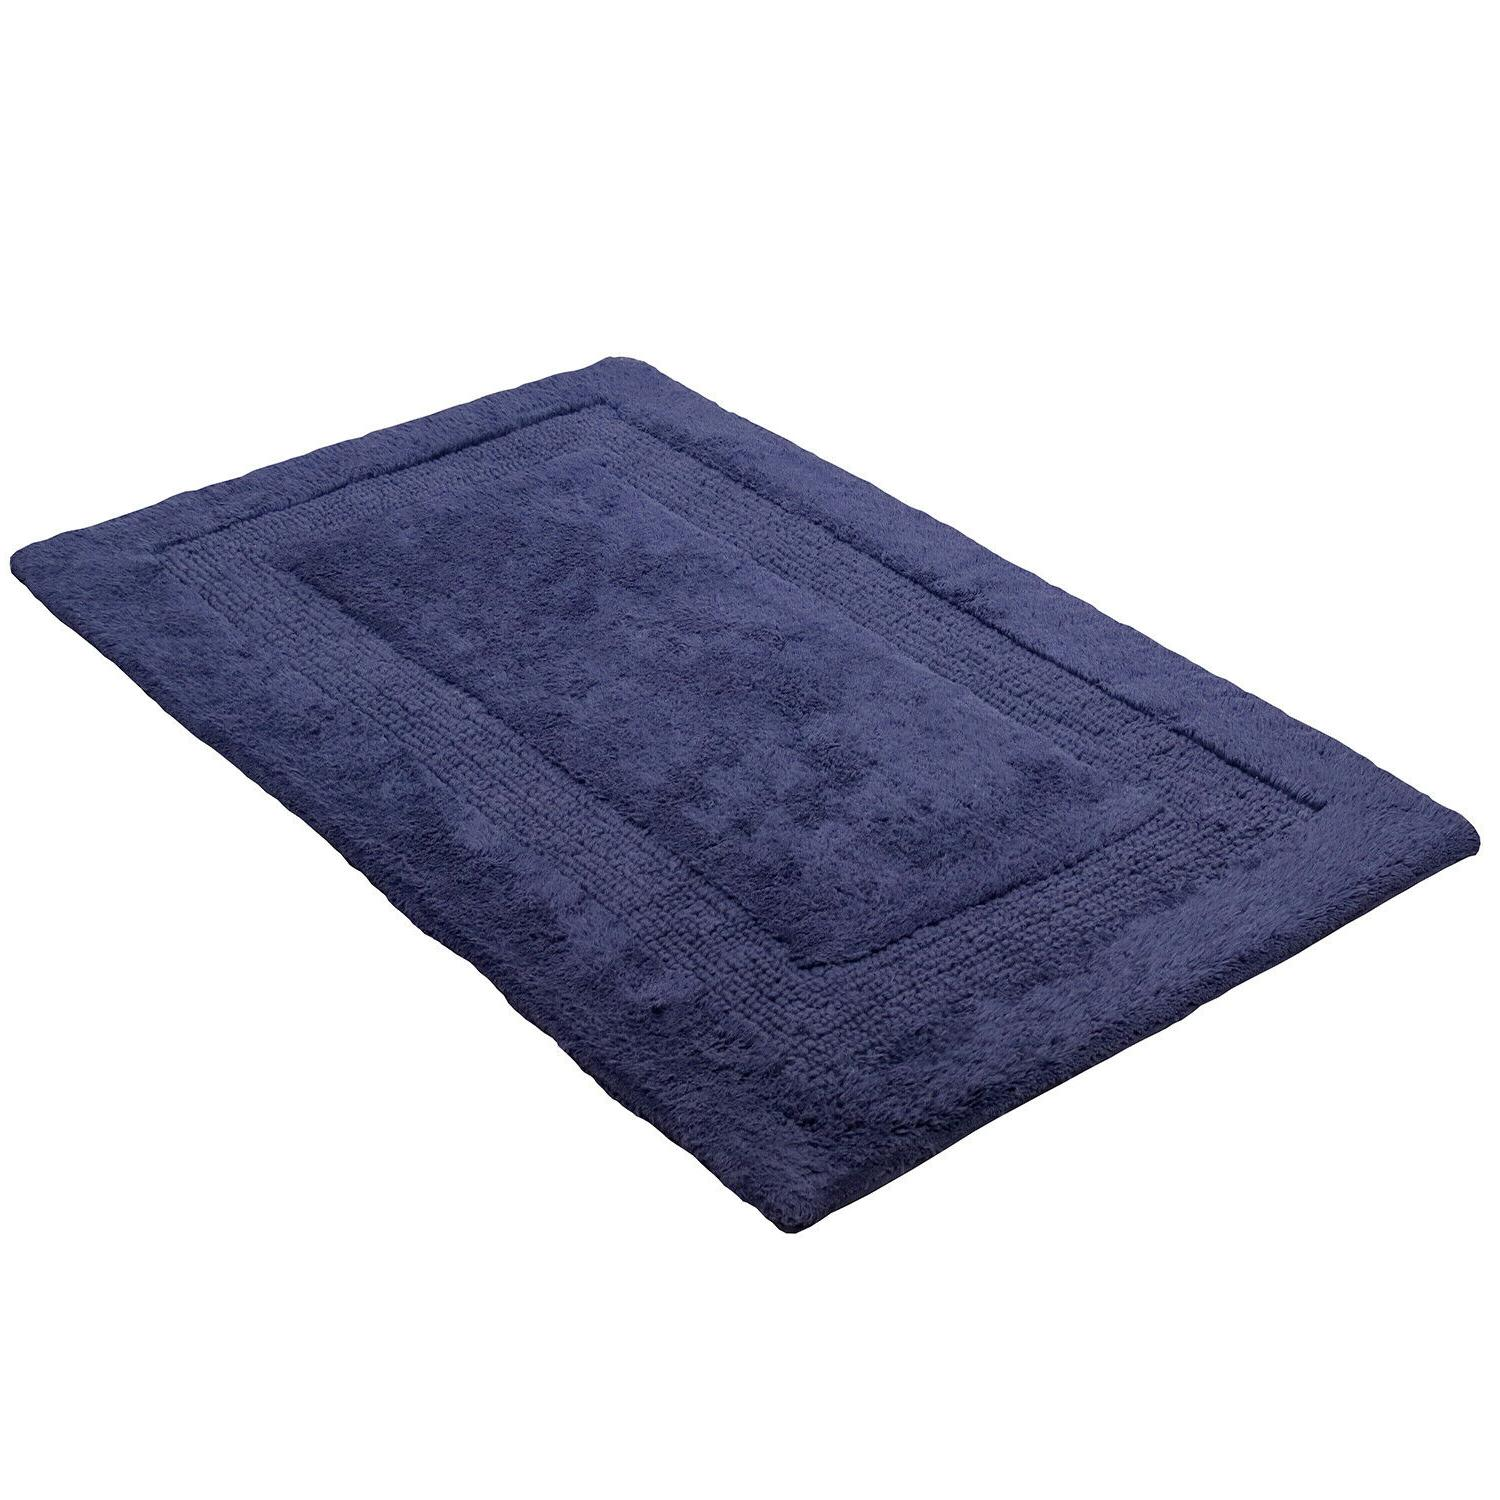 Provence Bath Rug - 21 x 34 - Soft Colors